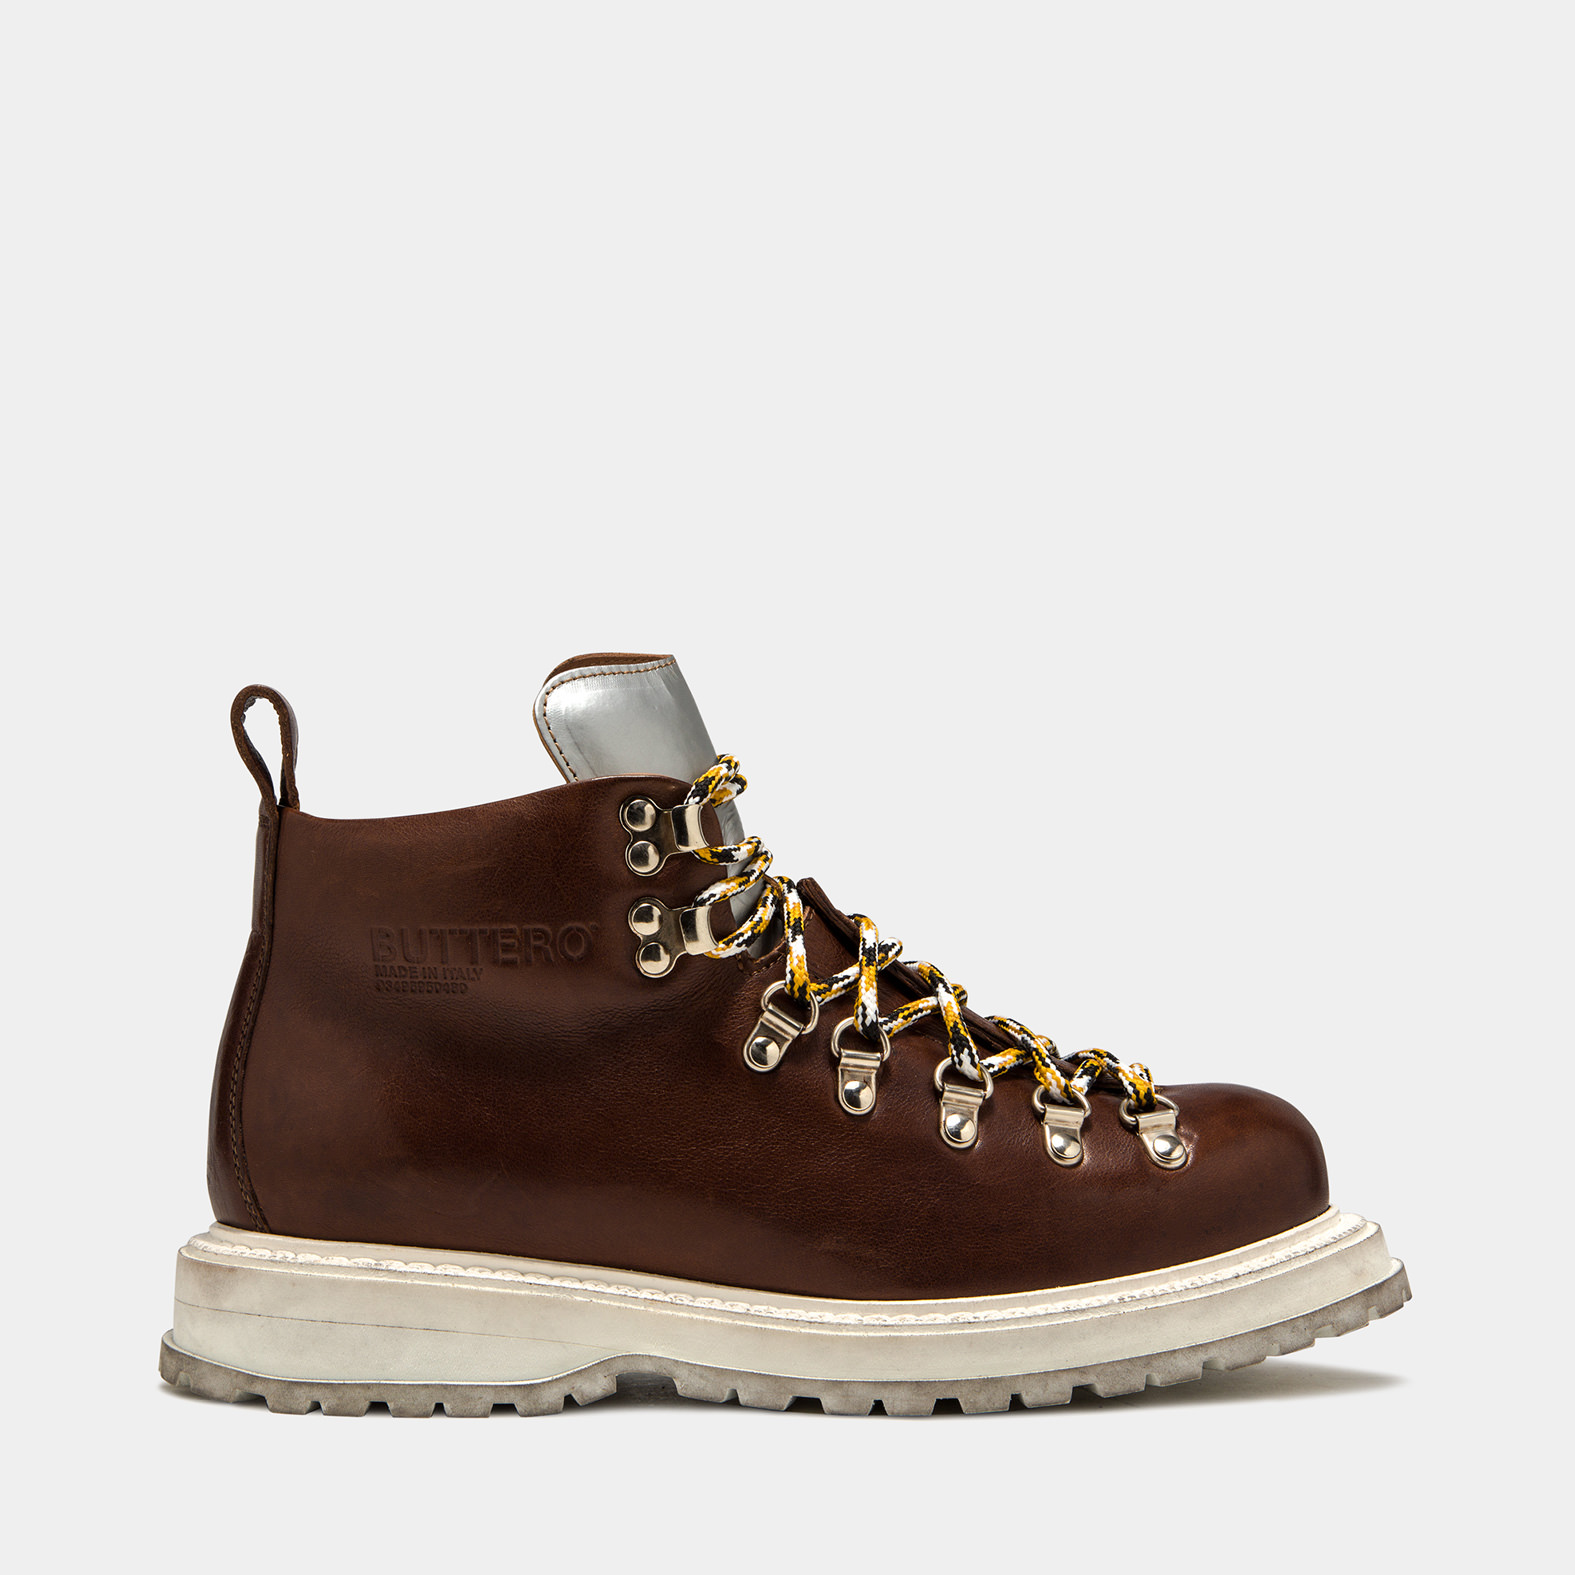 BUTTERO: ZENO HIKING BOOTS IN COTTO LEATHER